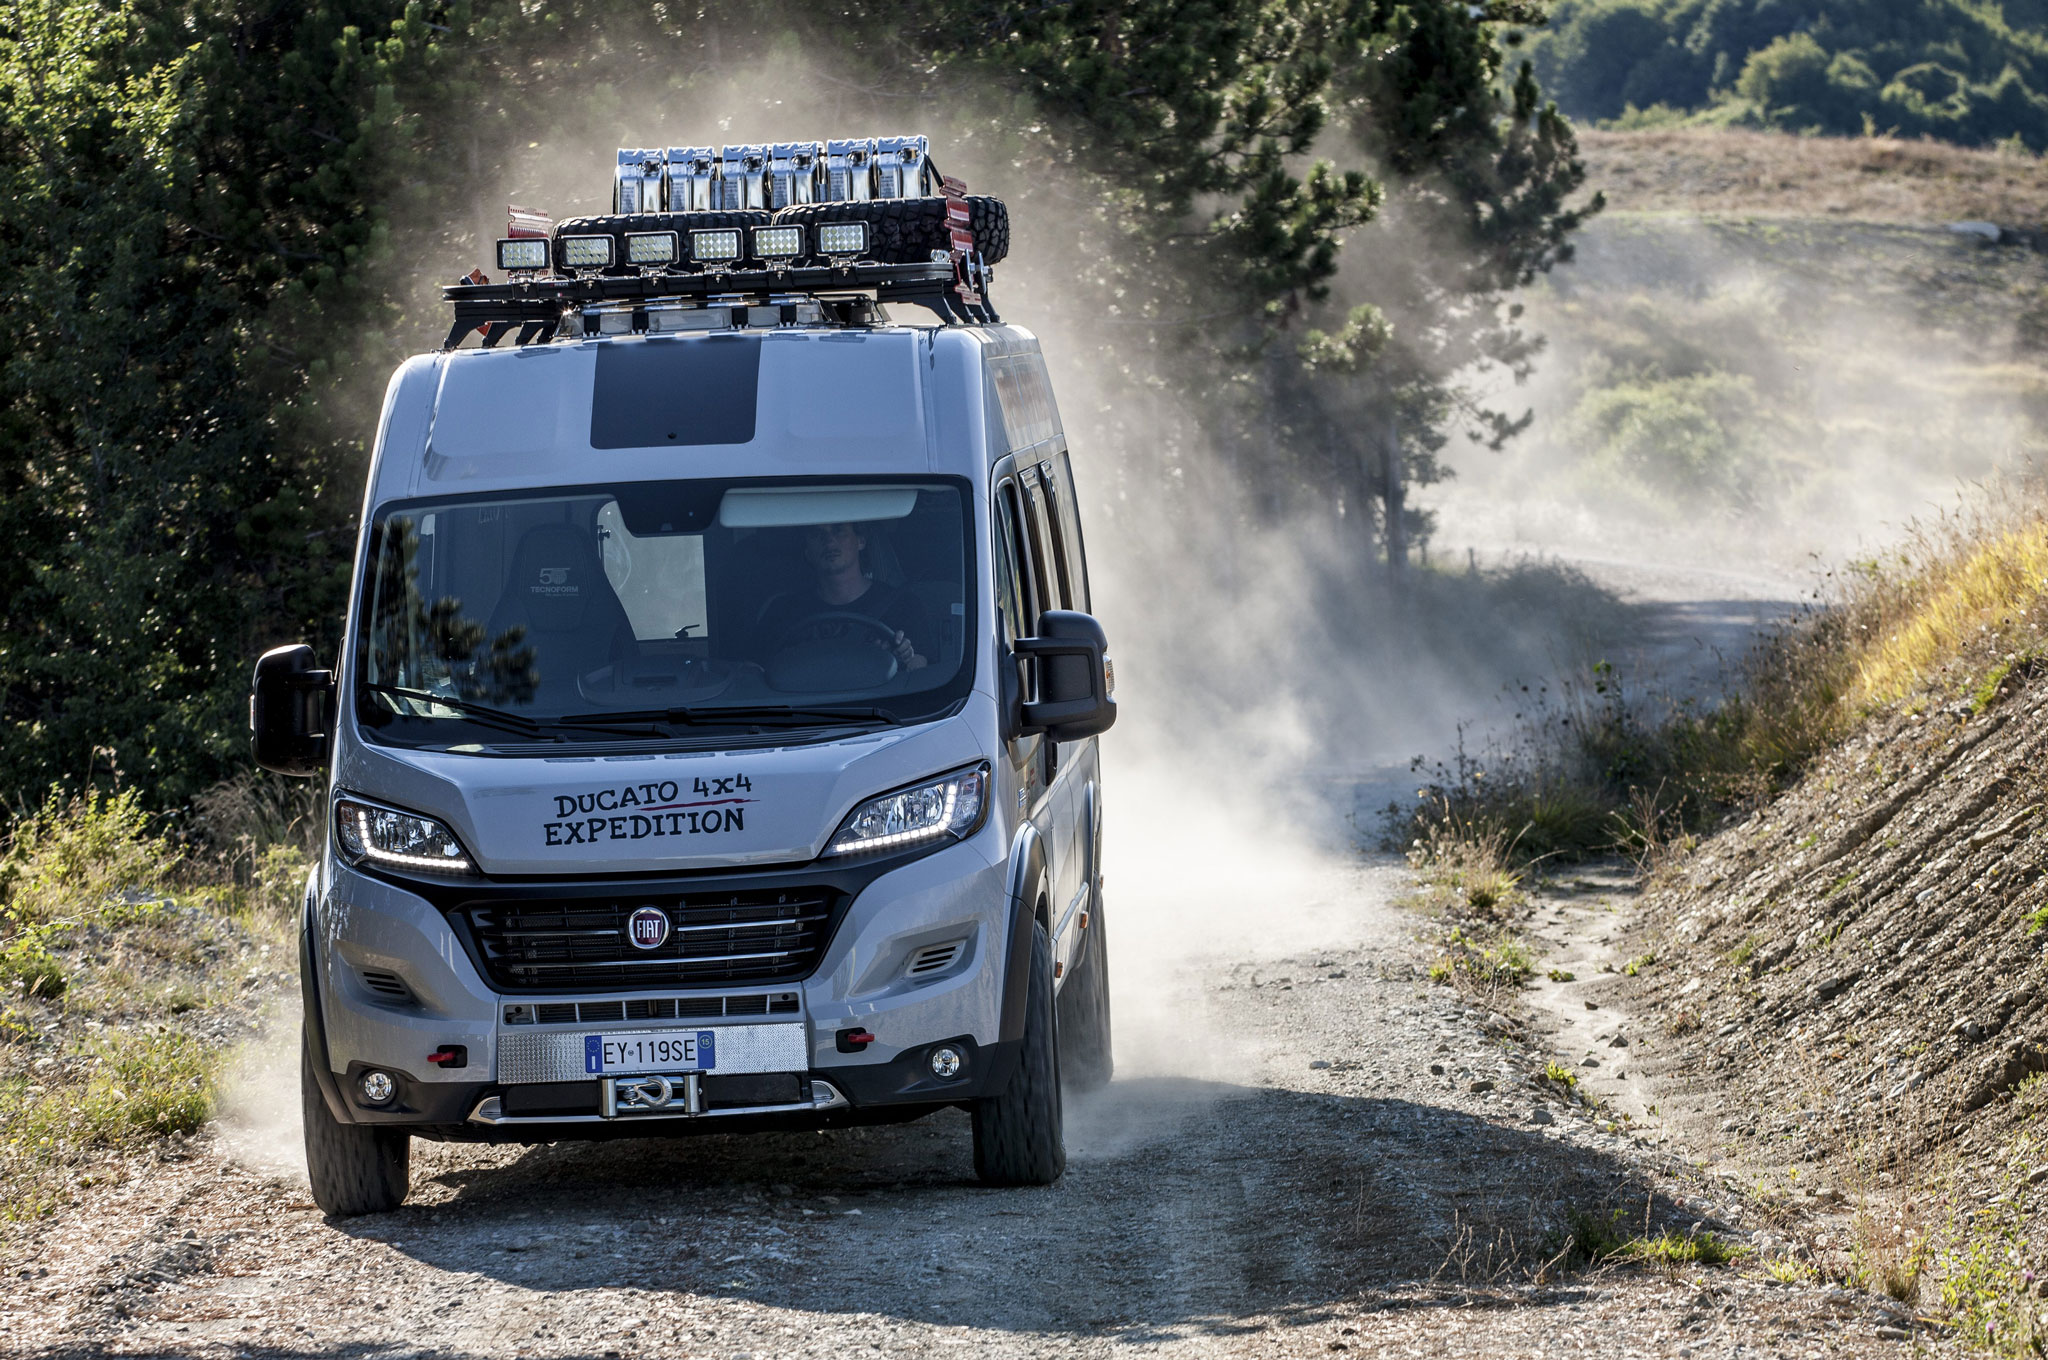 Fiat Ducato 4x4 Expedition Camper Show Van Appears At Uk Trade Show